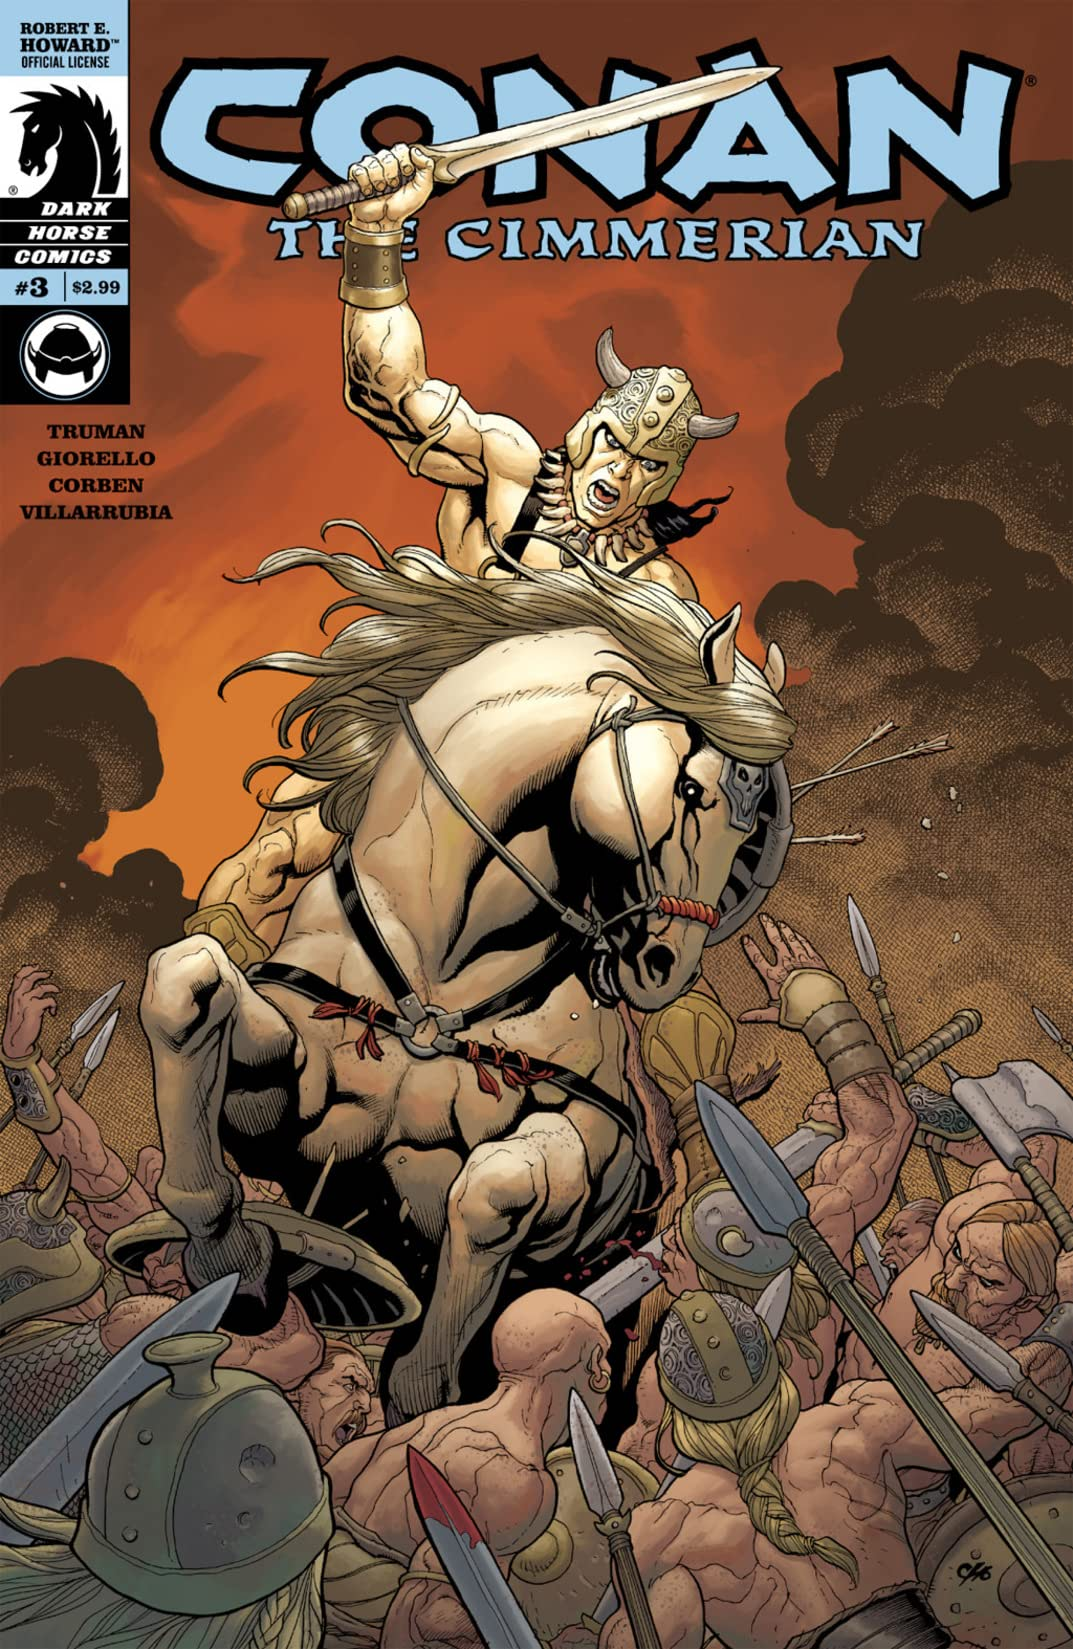 Conan the Cimmerian #3